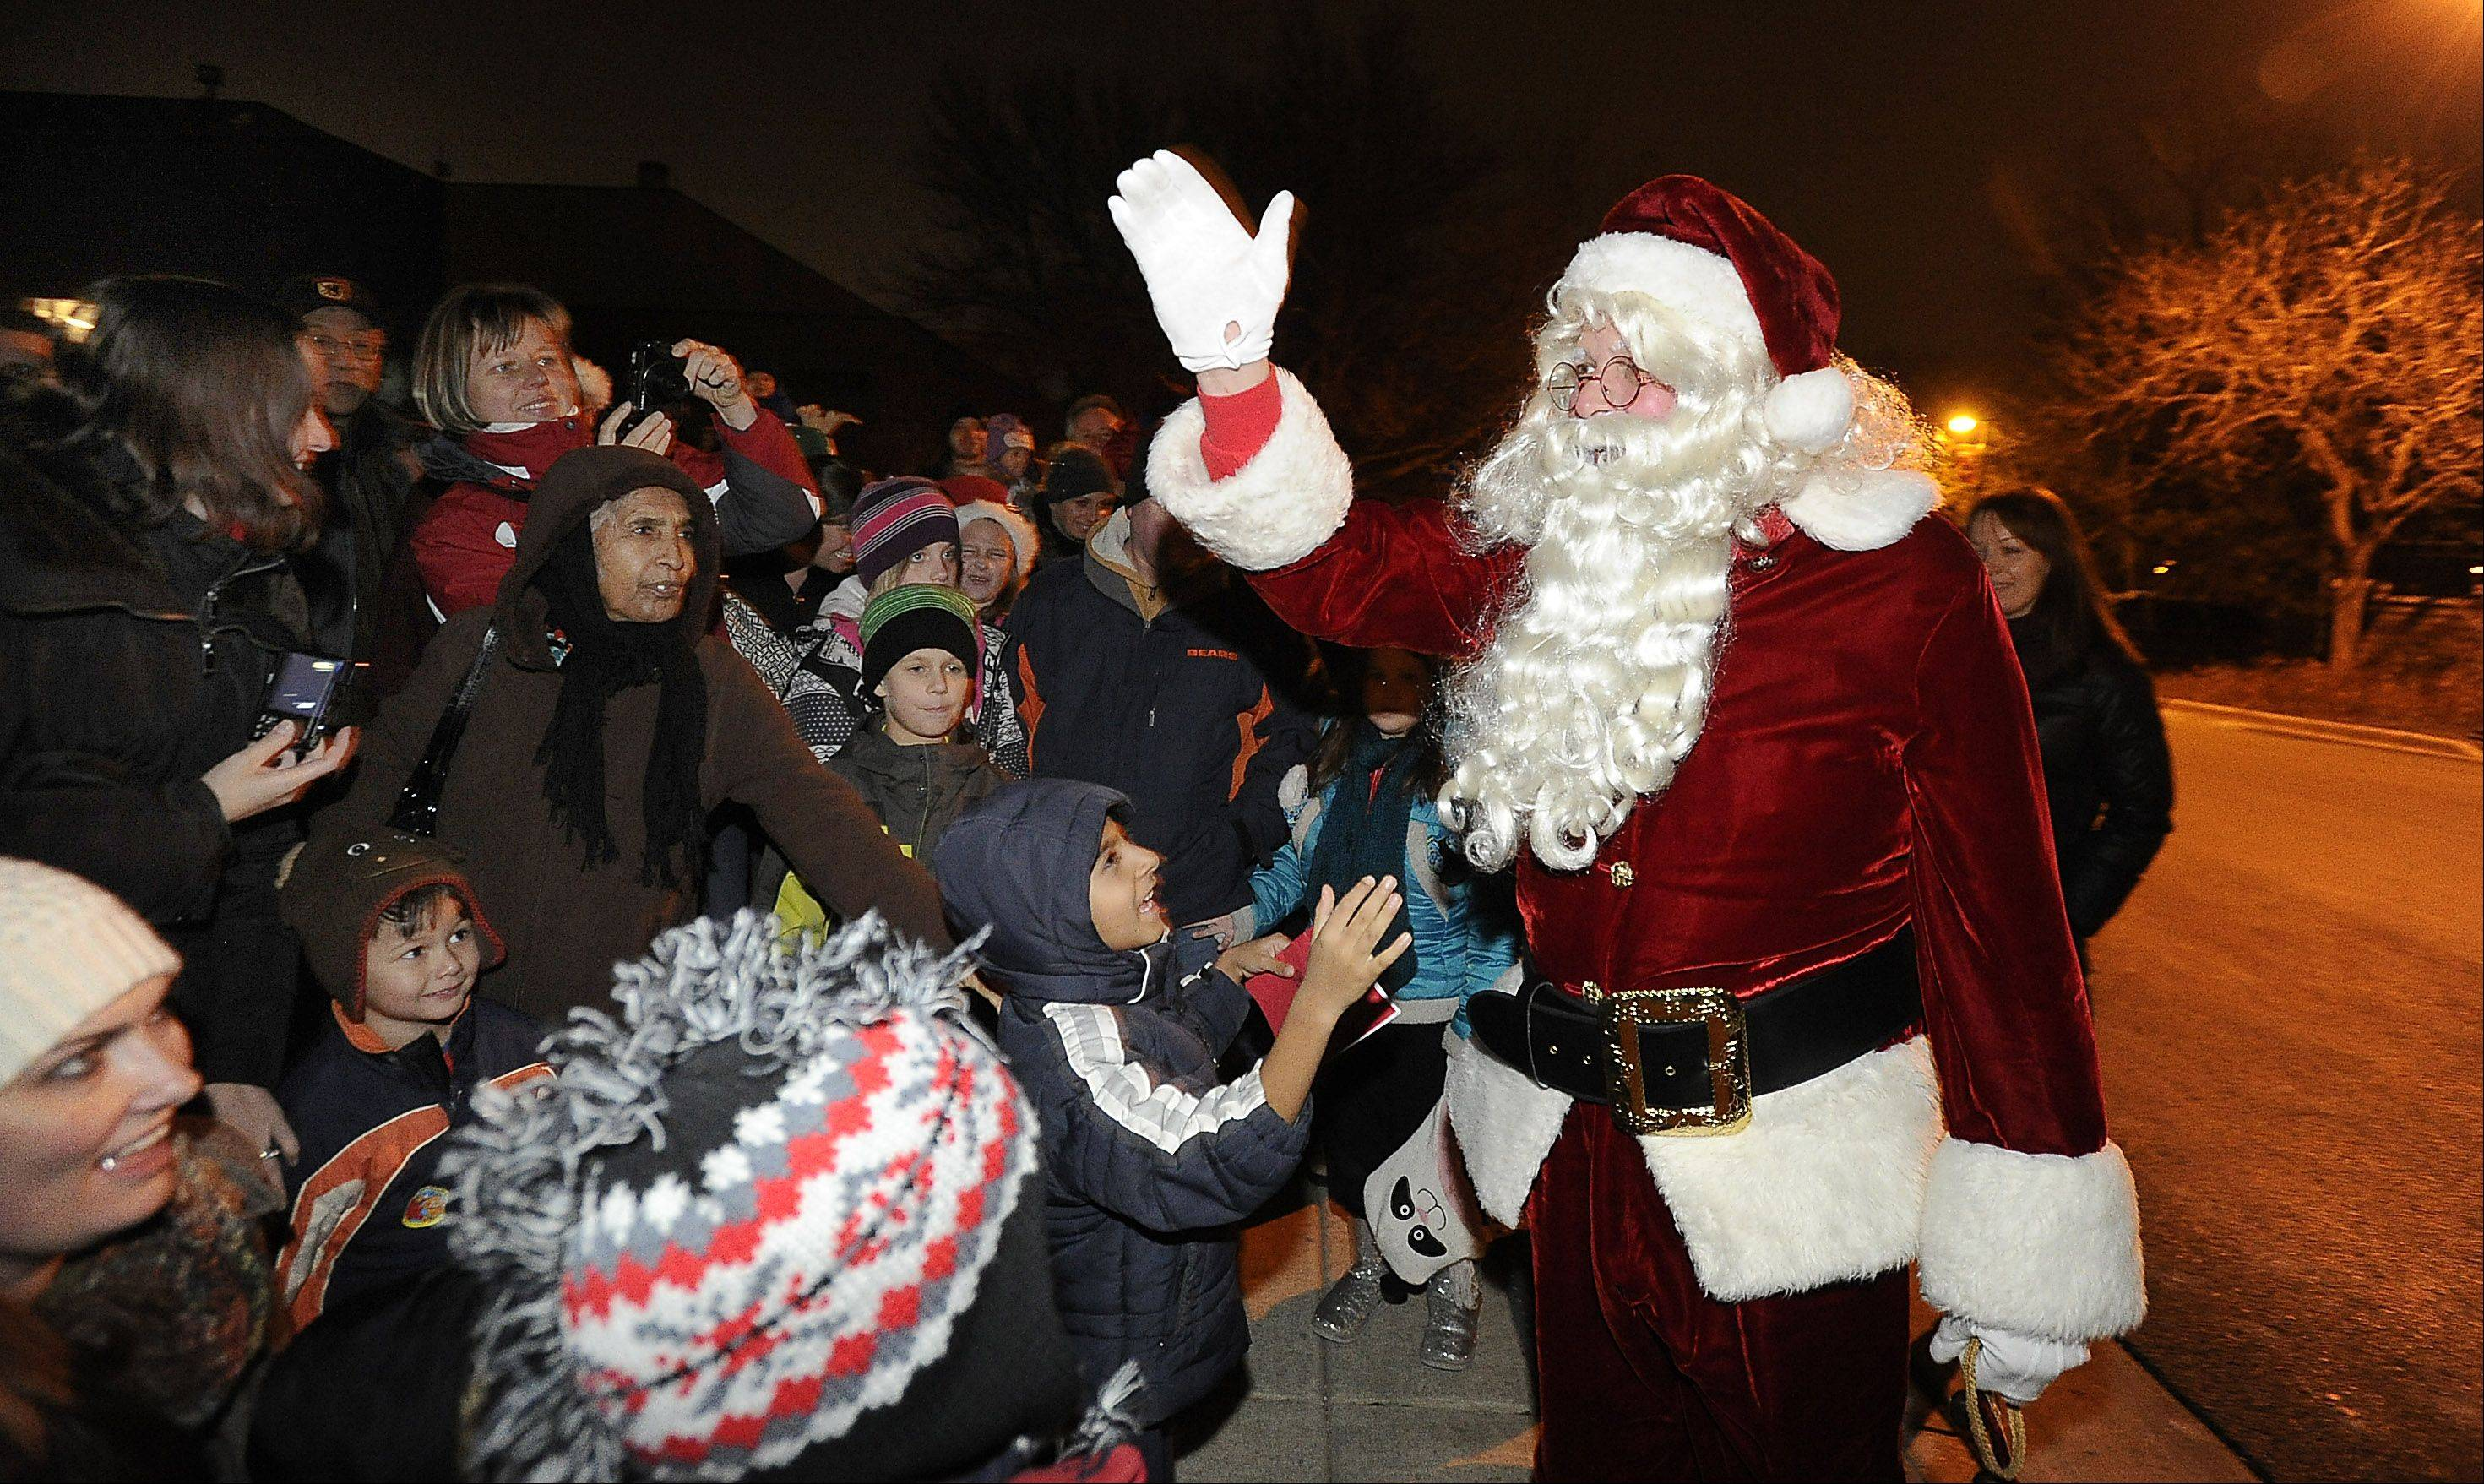 Santa put smiles on hundreds of kids' faces and listened to their Christmas wishes Friday night in Schaumburg.